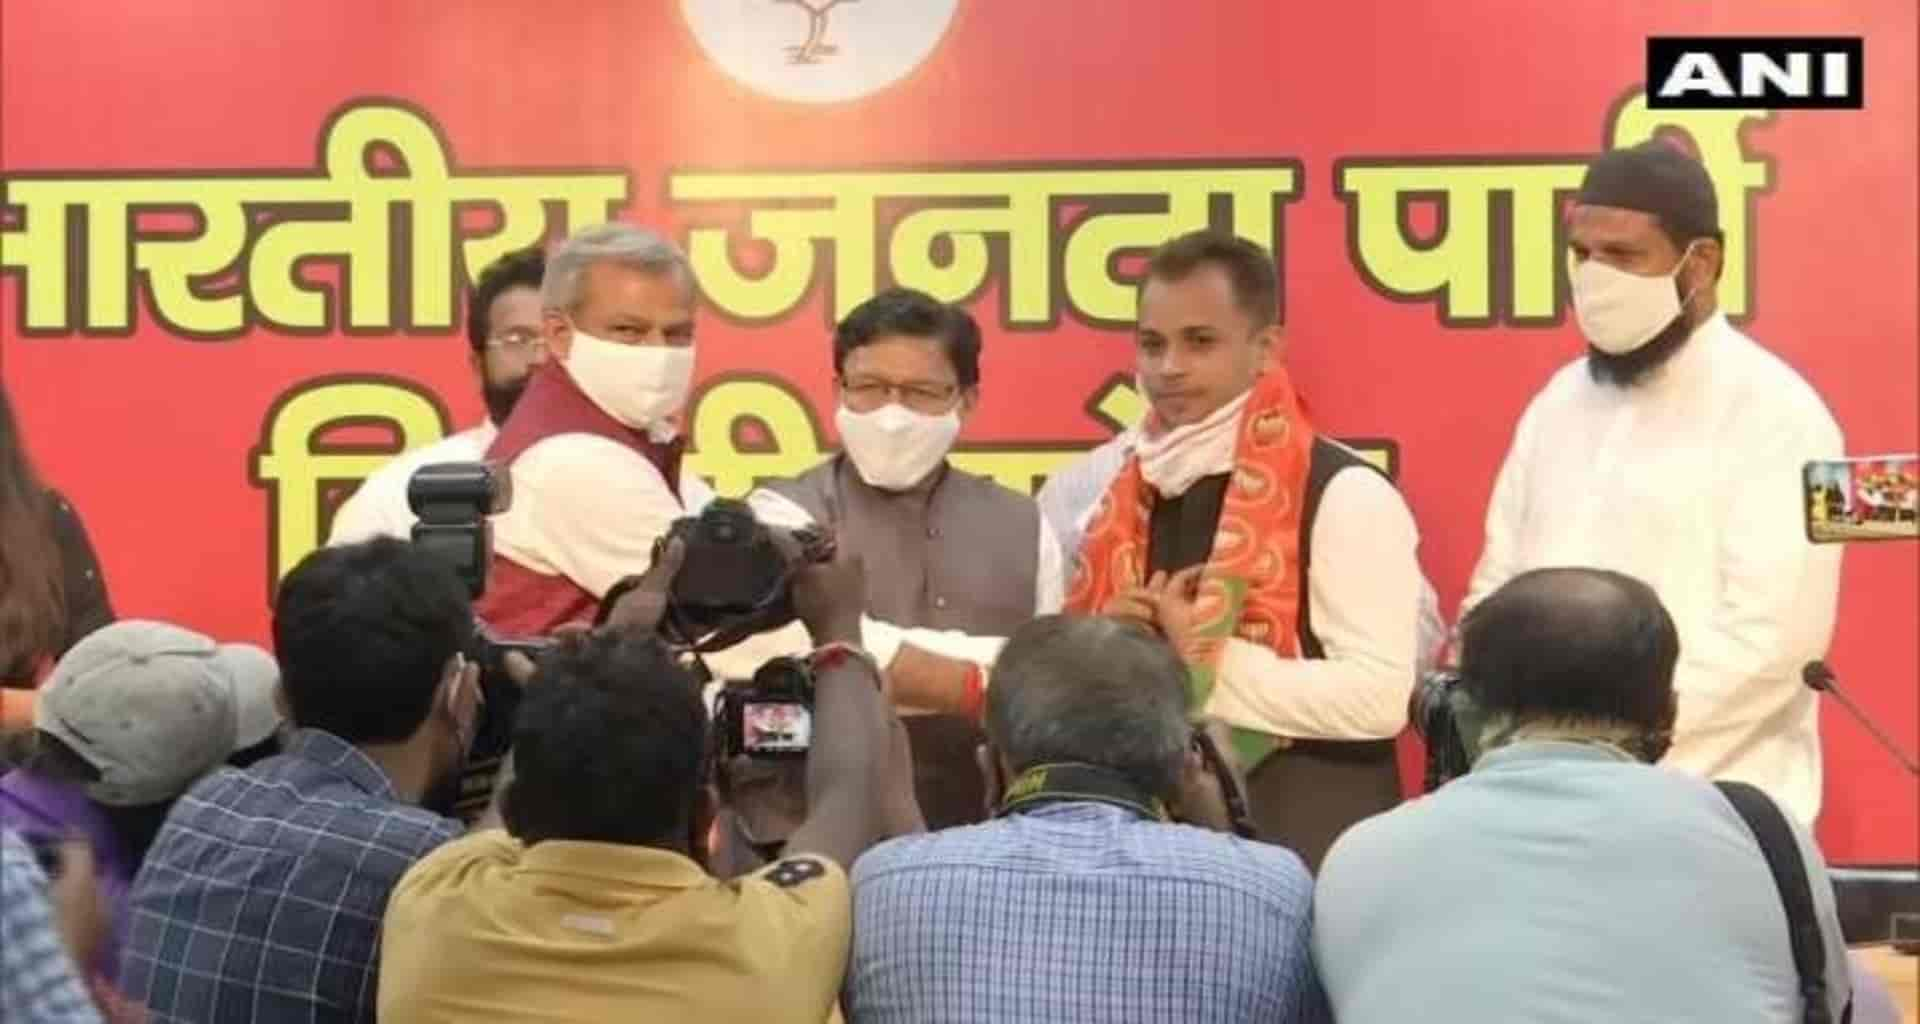 Shahzad Ali, who opposed the CAA in Shaheen Bagh, joined the BJP